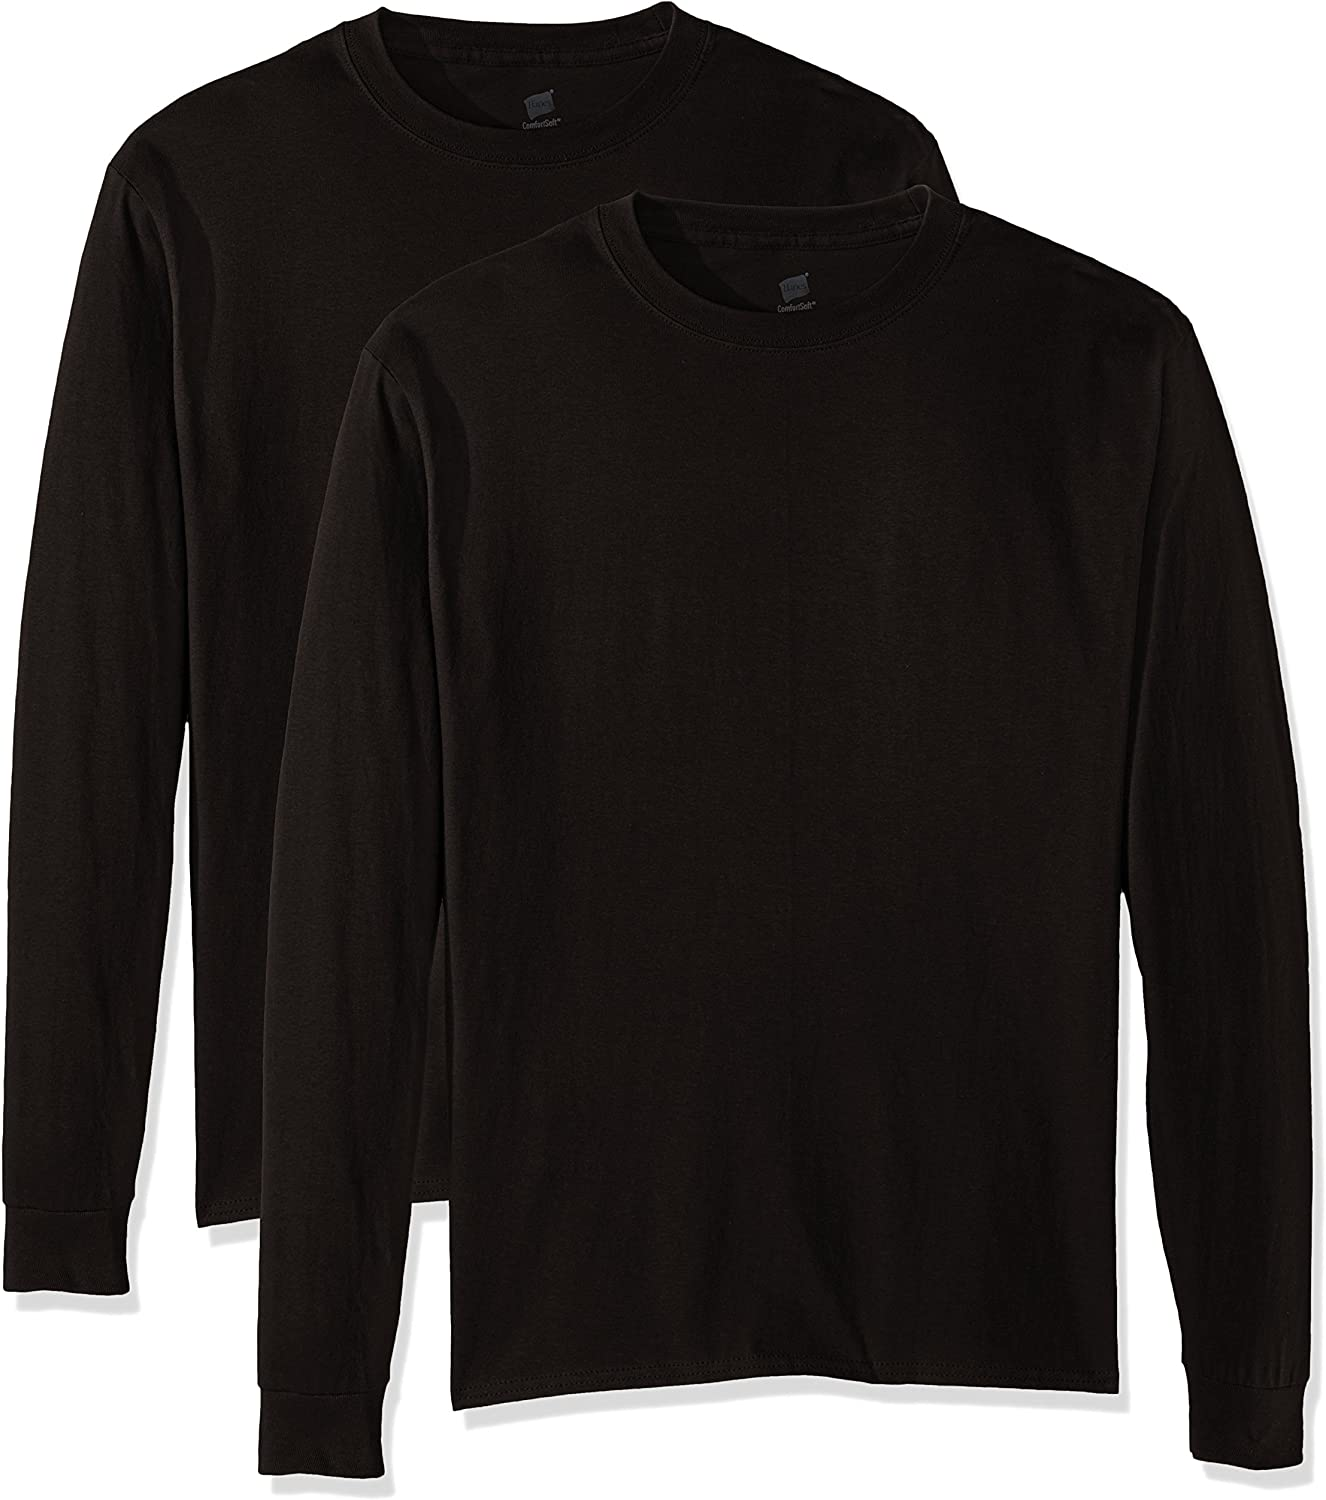 Hanes Mens 4 Pack Long Sleeve T-Shirt 2 Navy 5286 2 Black Small